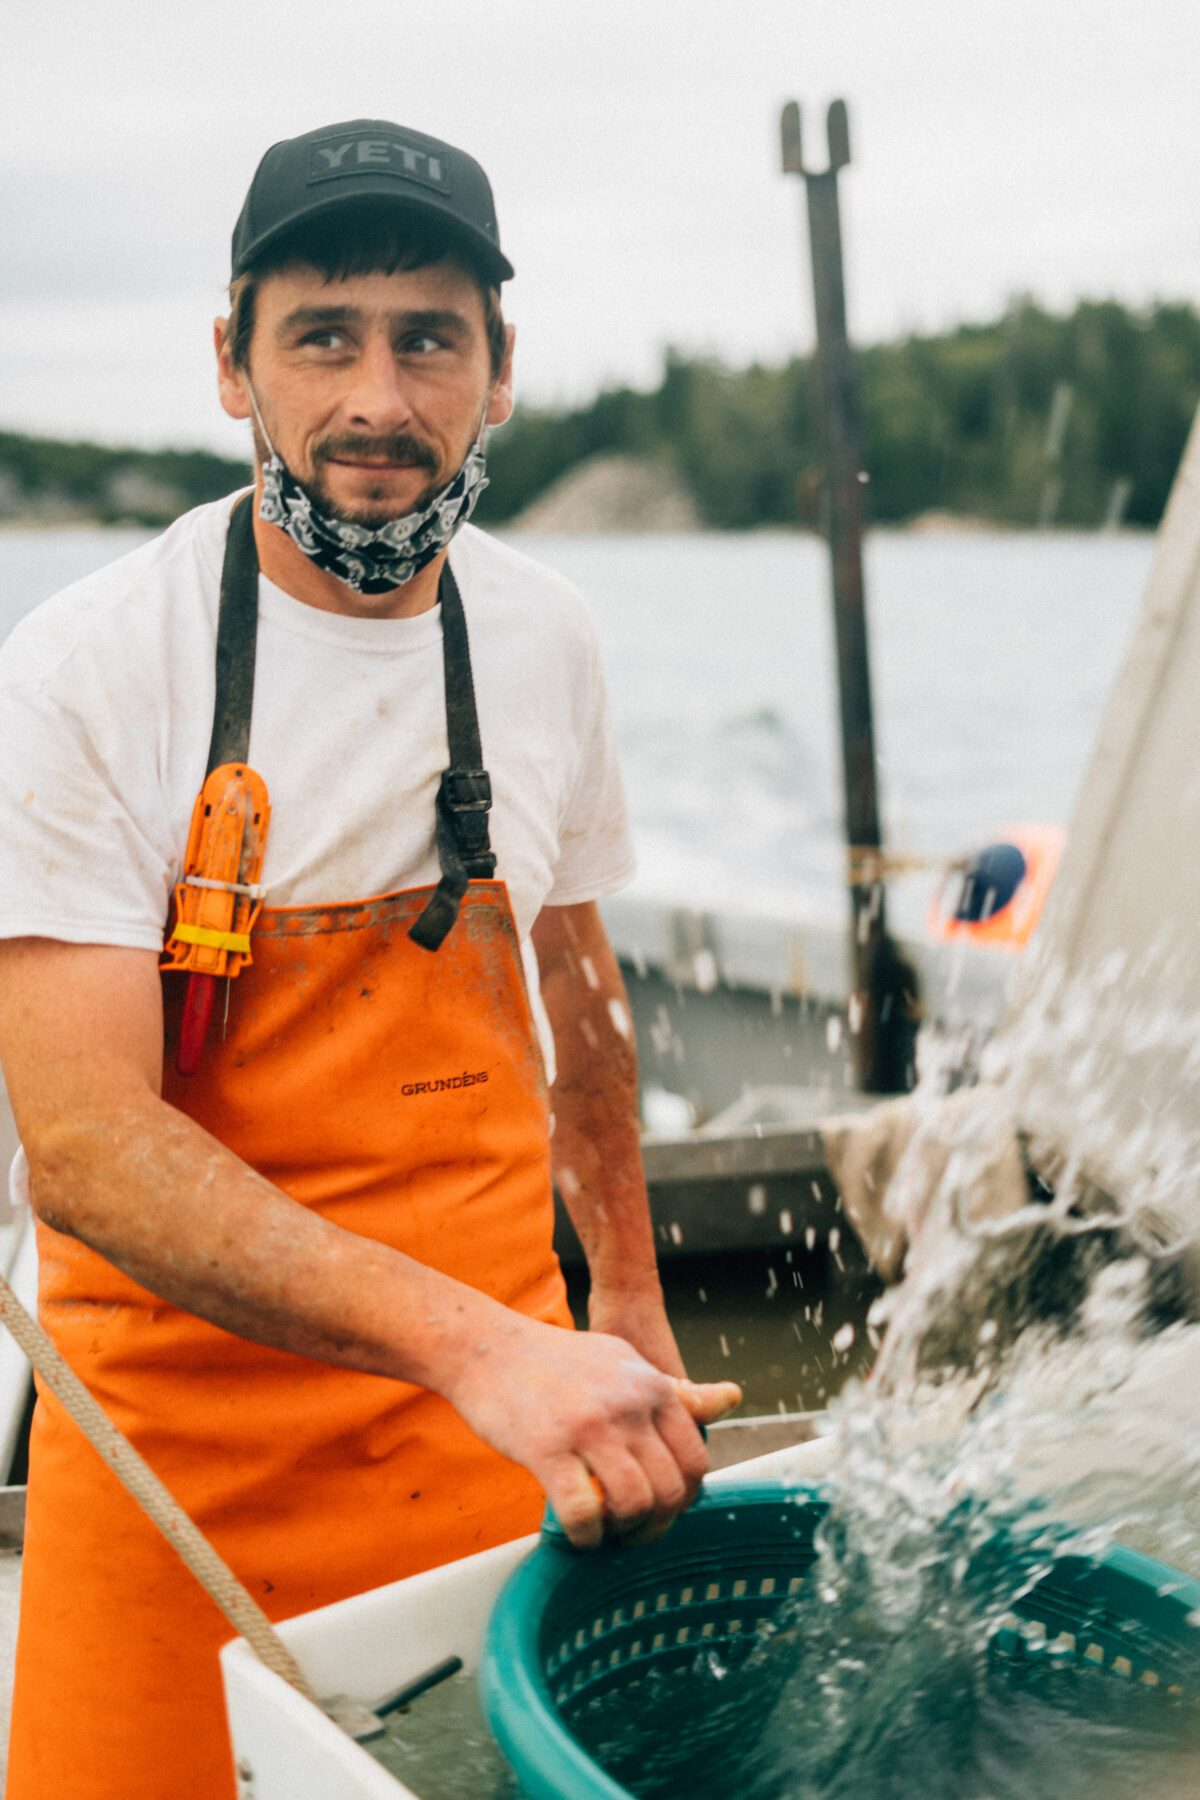 Bob Brewer, scallop farmer